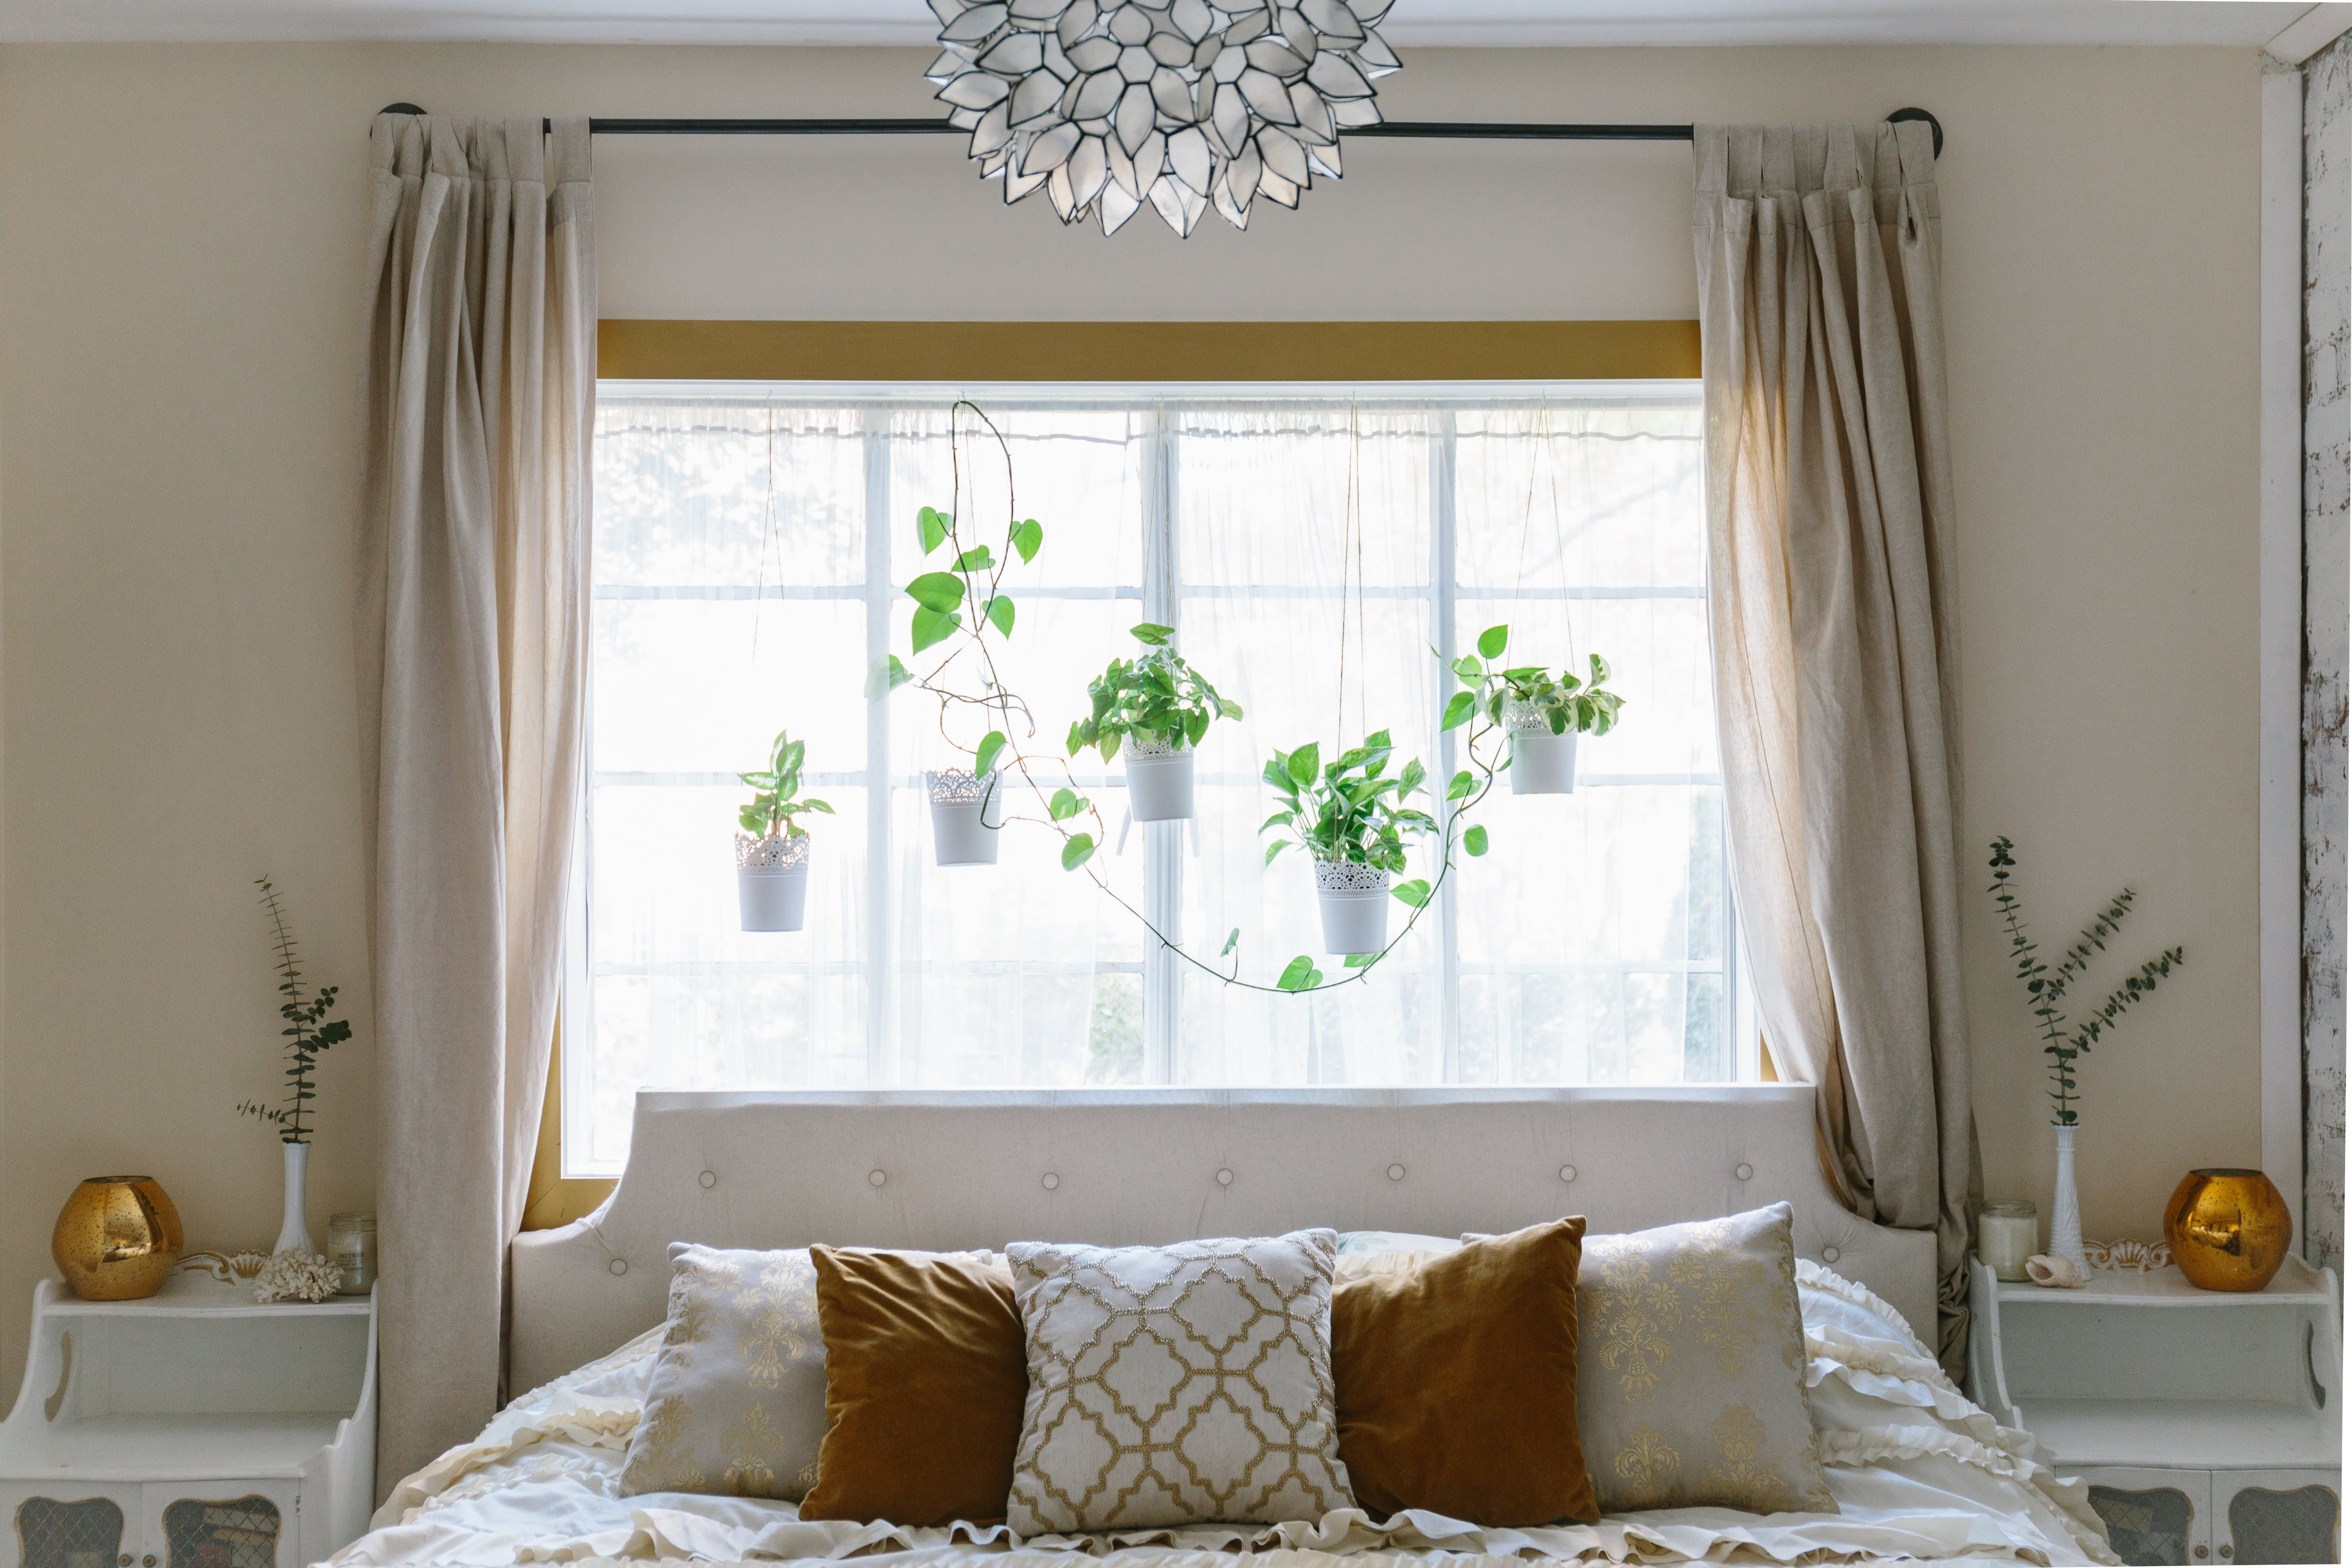 Bed against the window  tour adventurously dreamy home with a touch of golden glam  condos